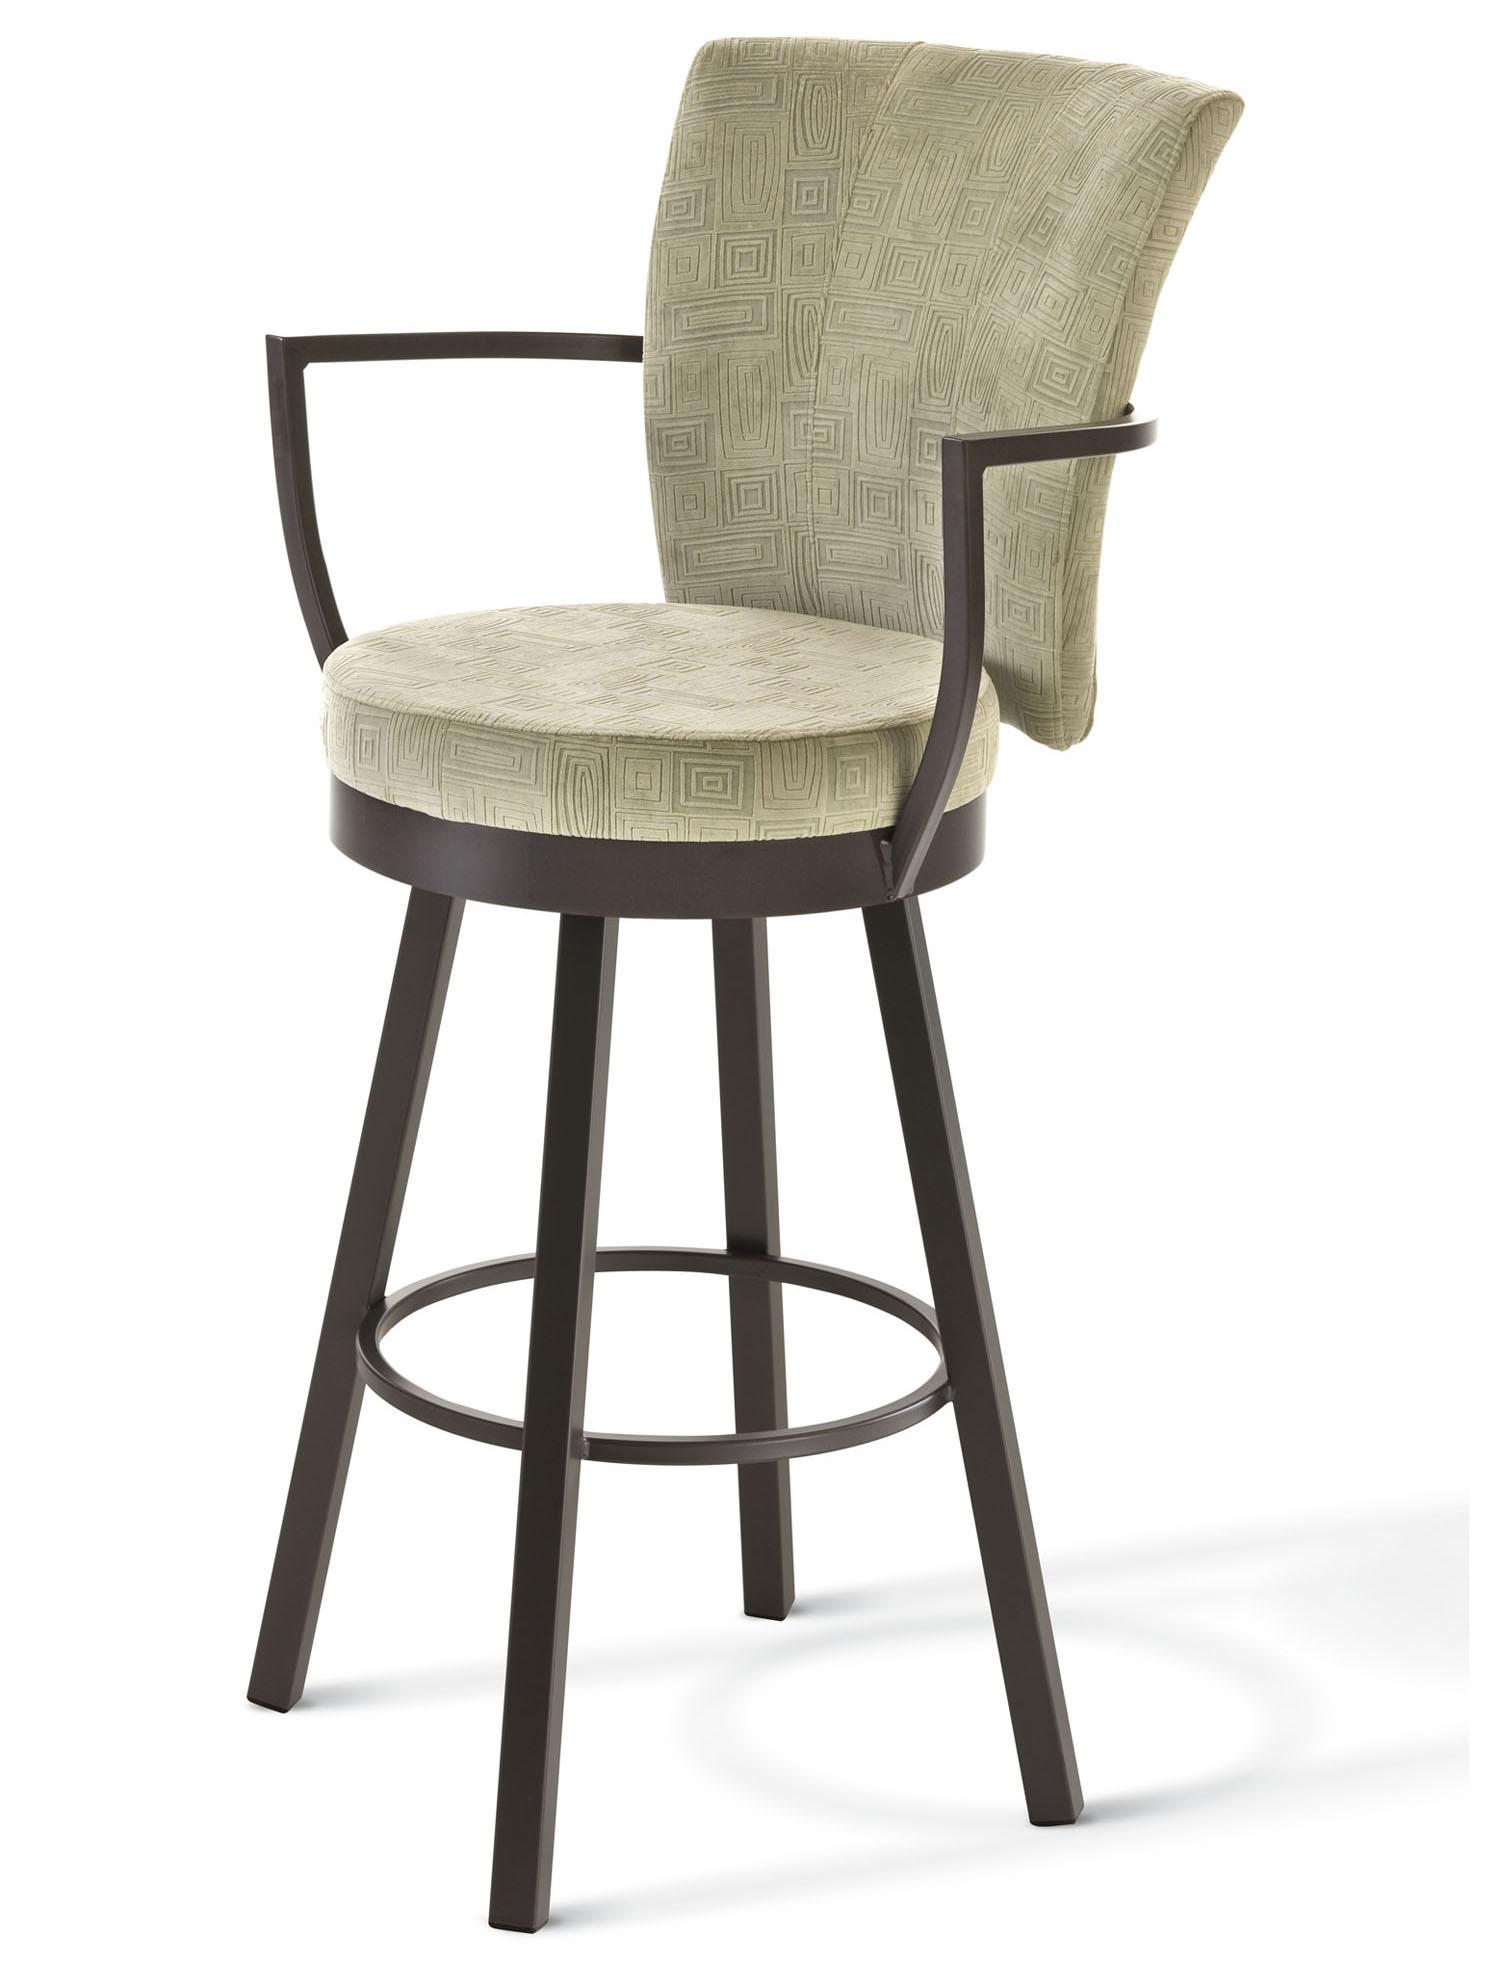 Boudoir Counter Height Cardin Swivel Stool by Amisco at Jordan's Home Furnishings